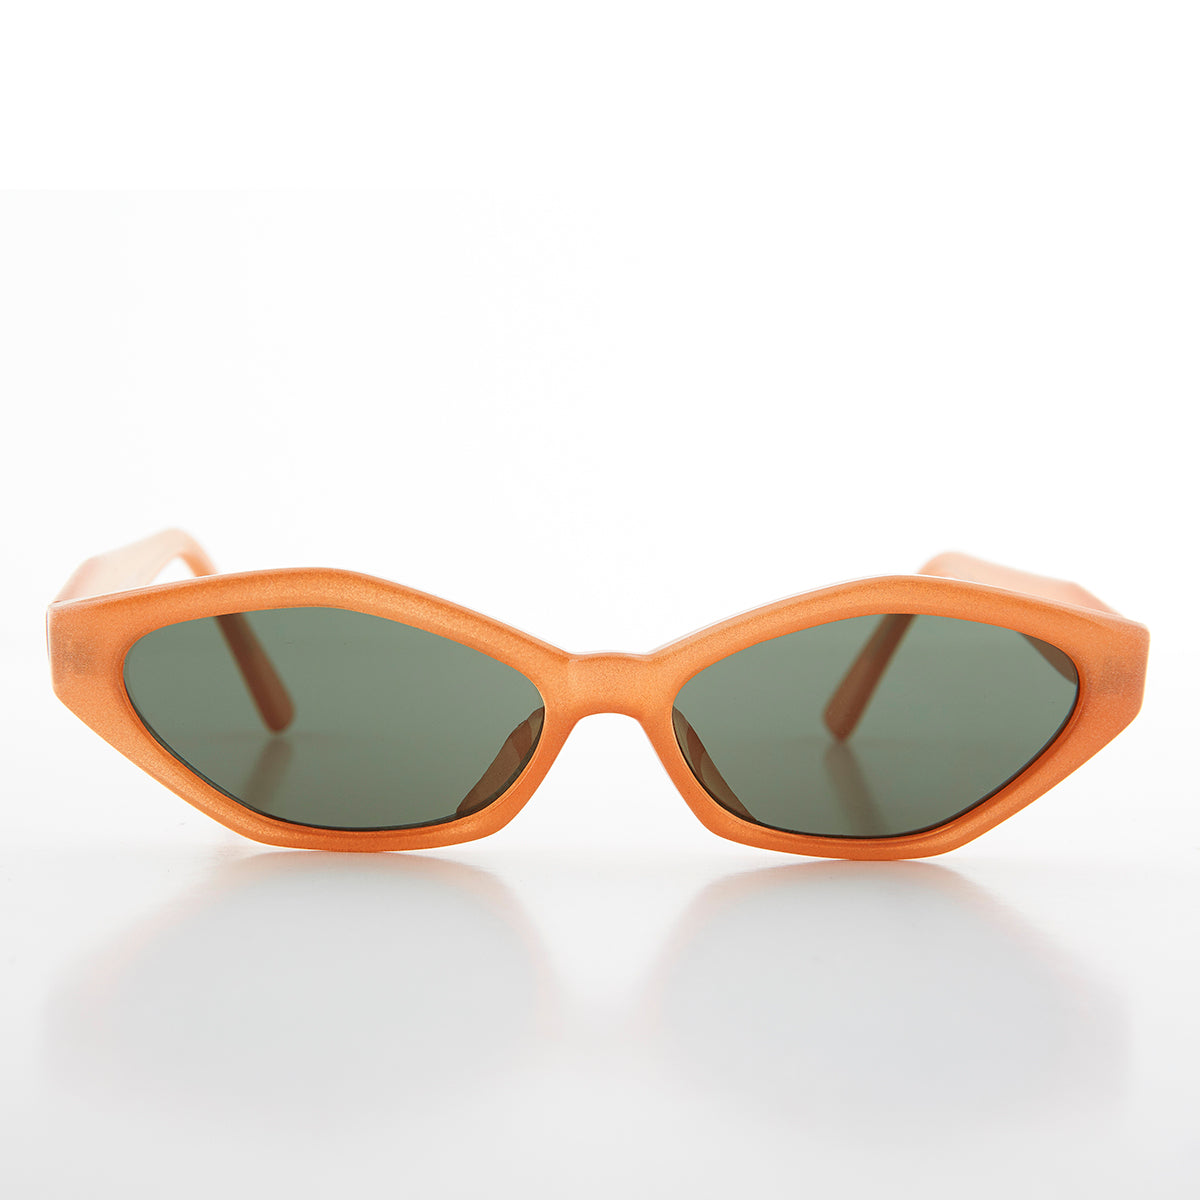 Colorful Angular Mod Cat Eye Sunglass